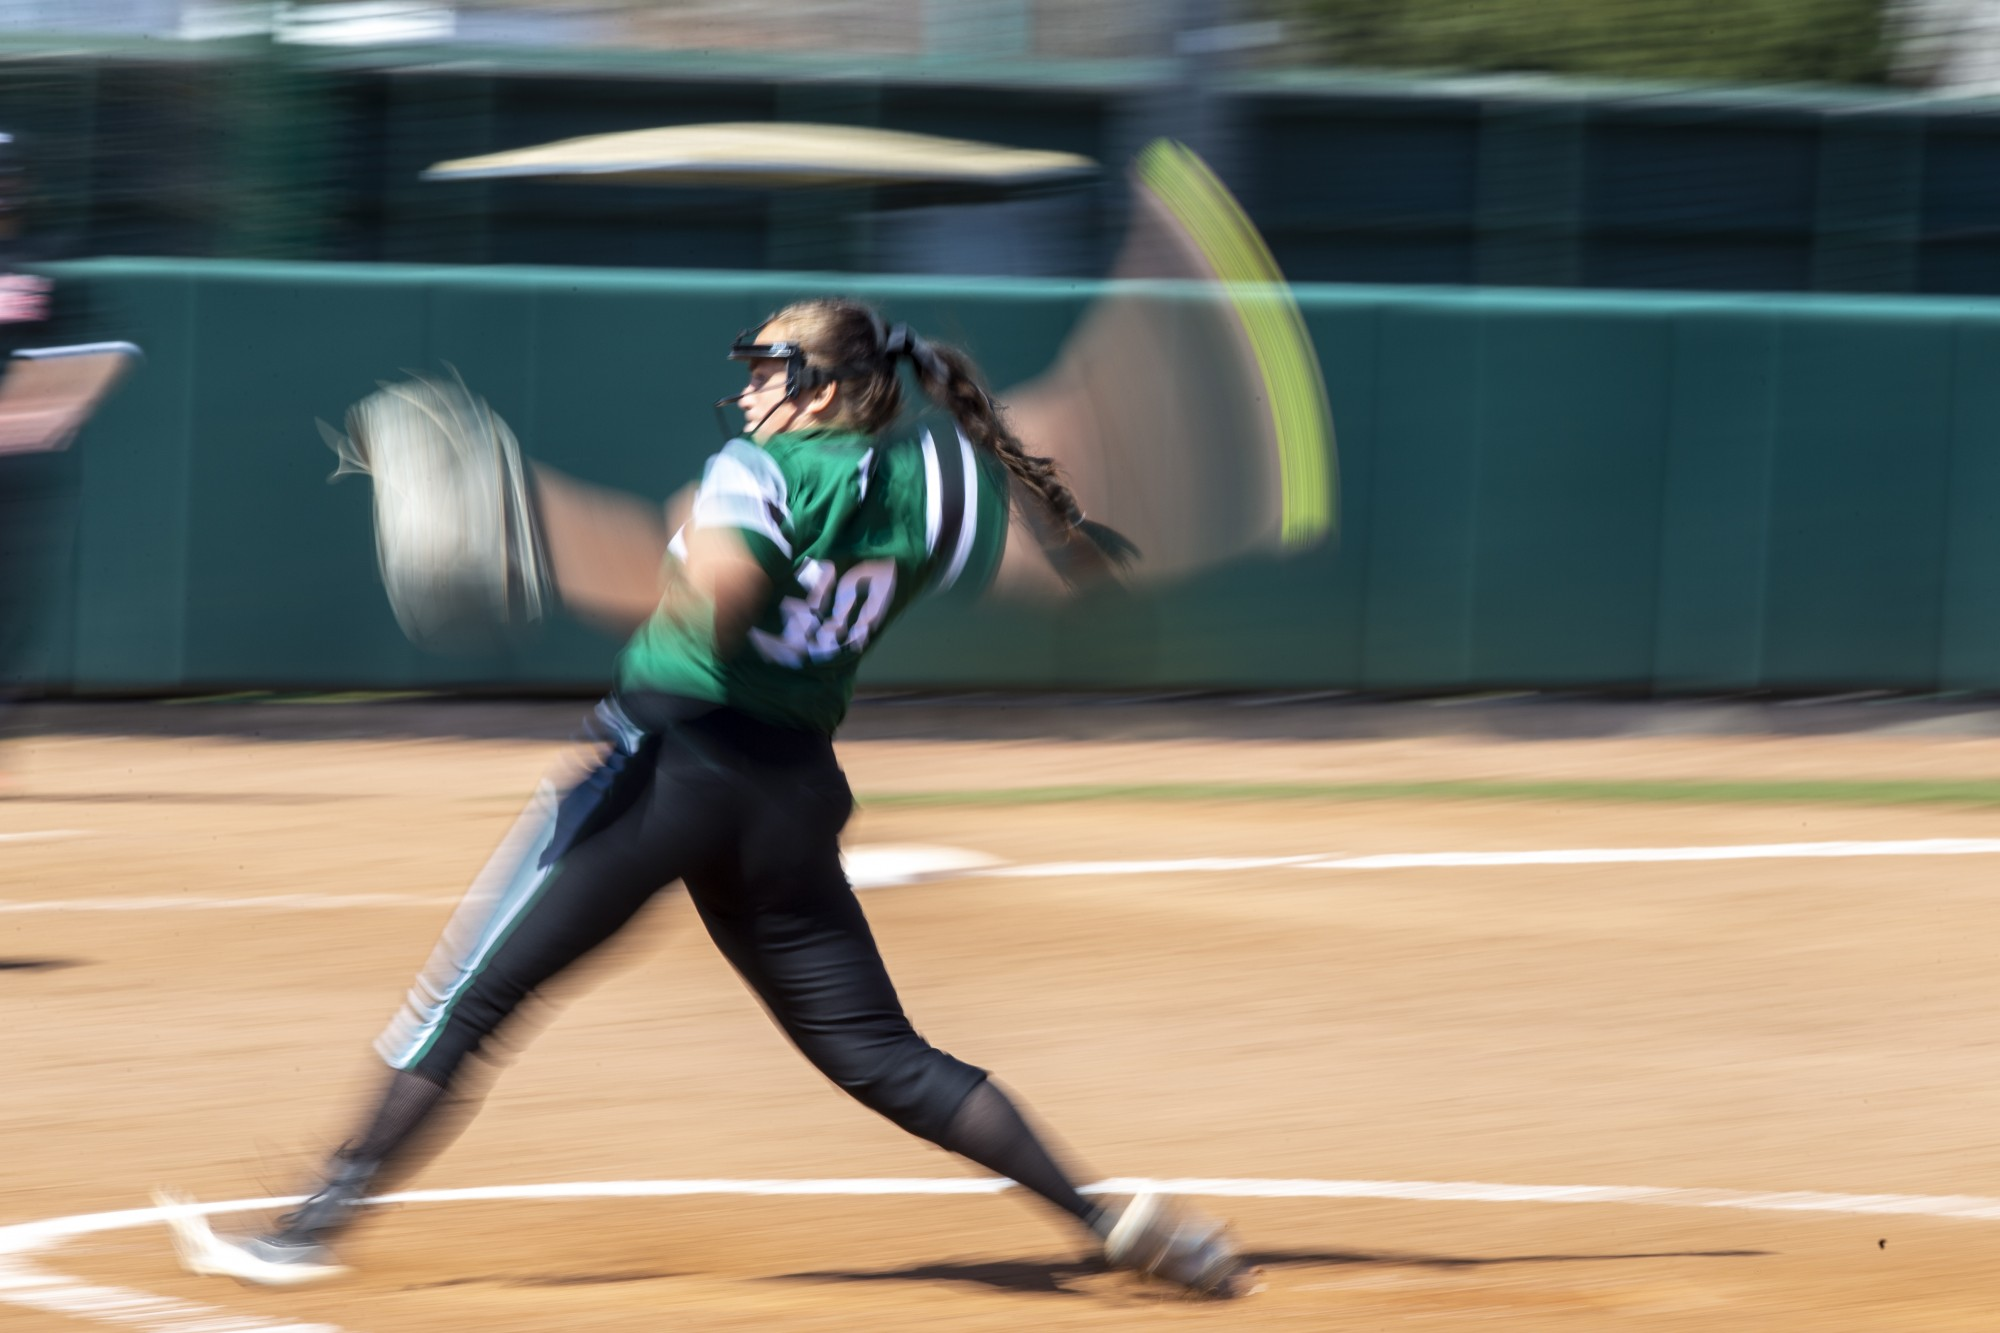 Ohio's pitcher, Mackensie Kohl (30), pitches against Northern Illinois University on Sat. March 20, 2021 in Athens, Ohio.